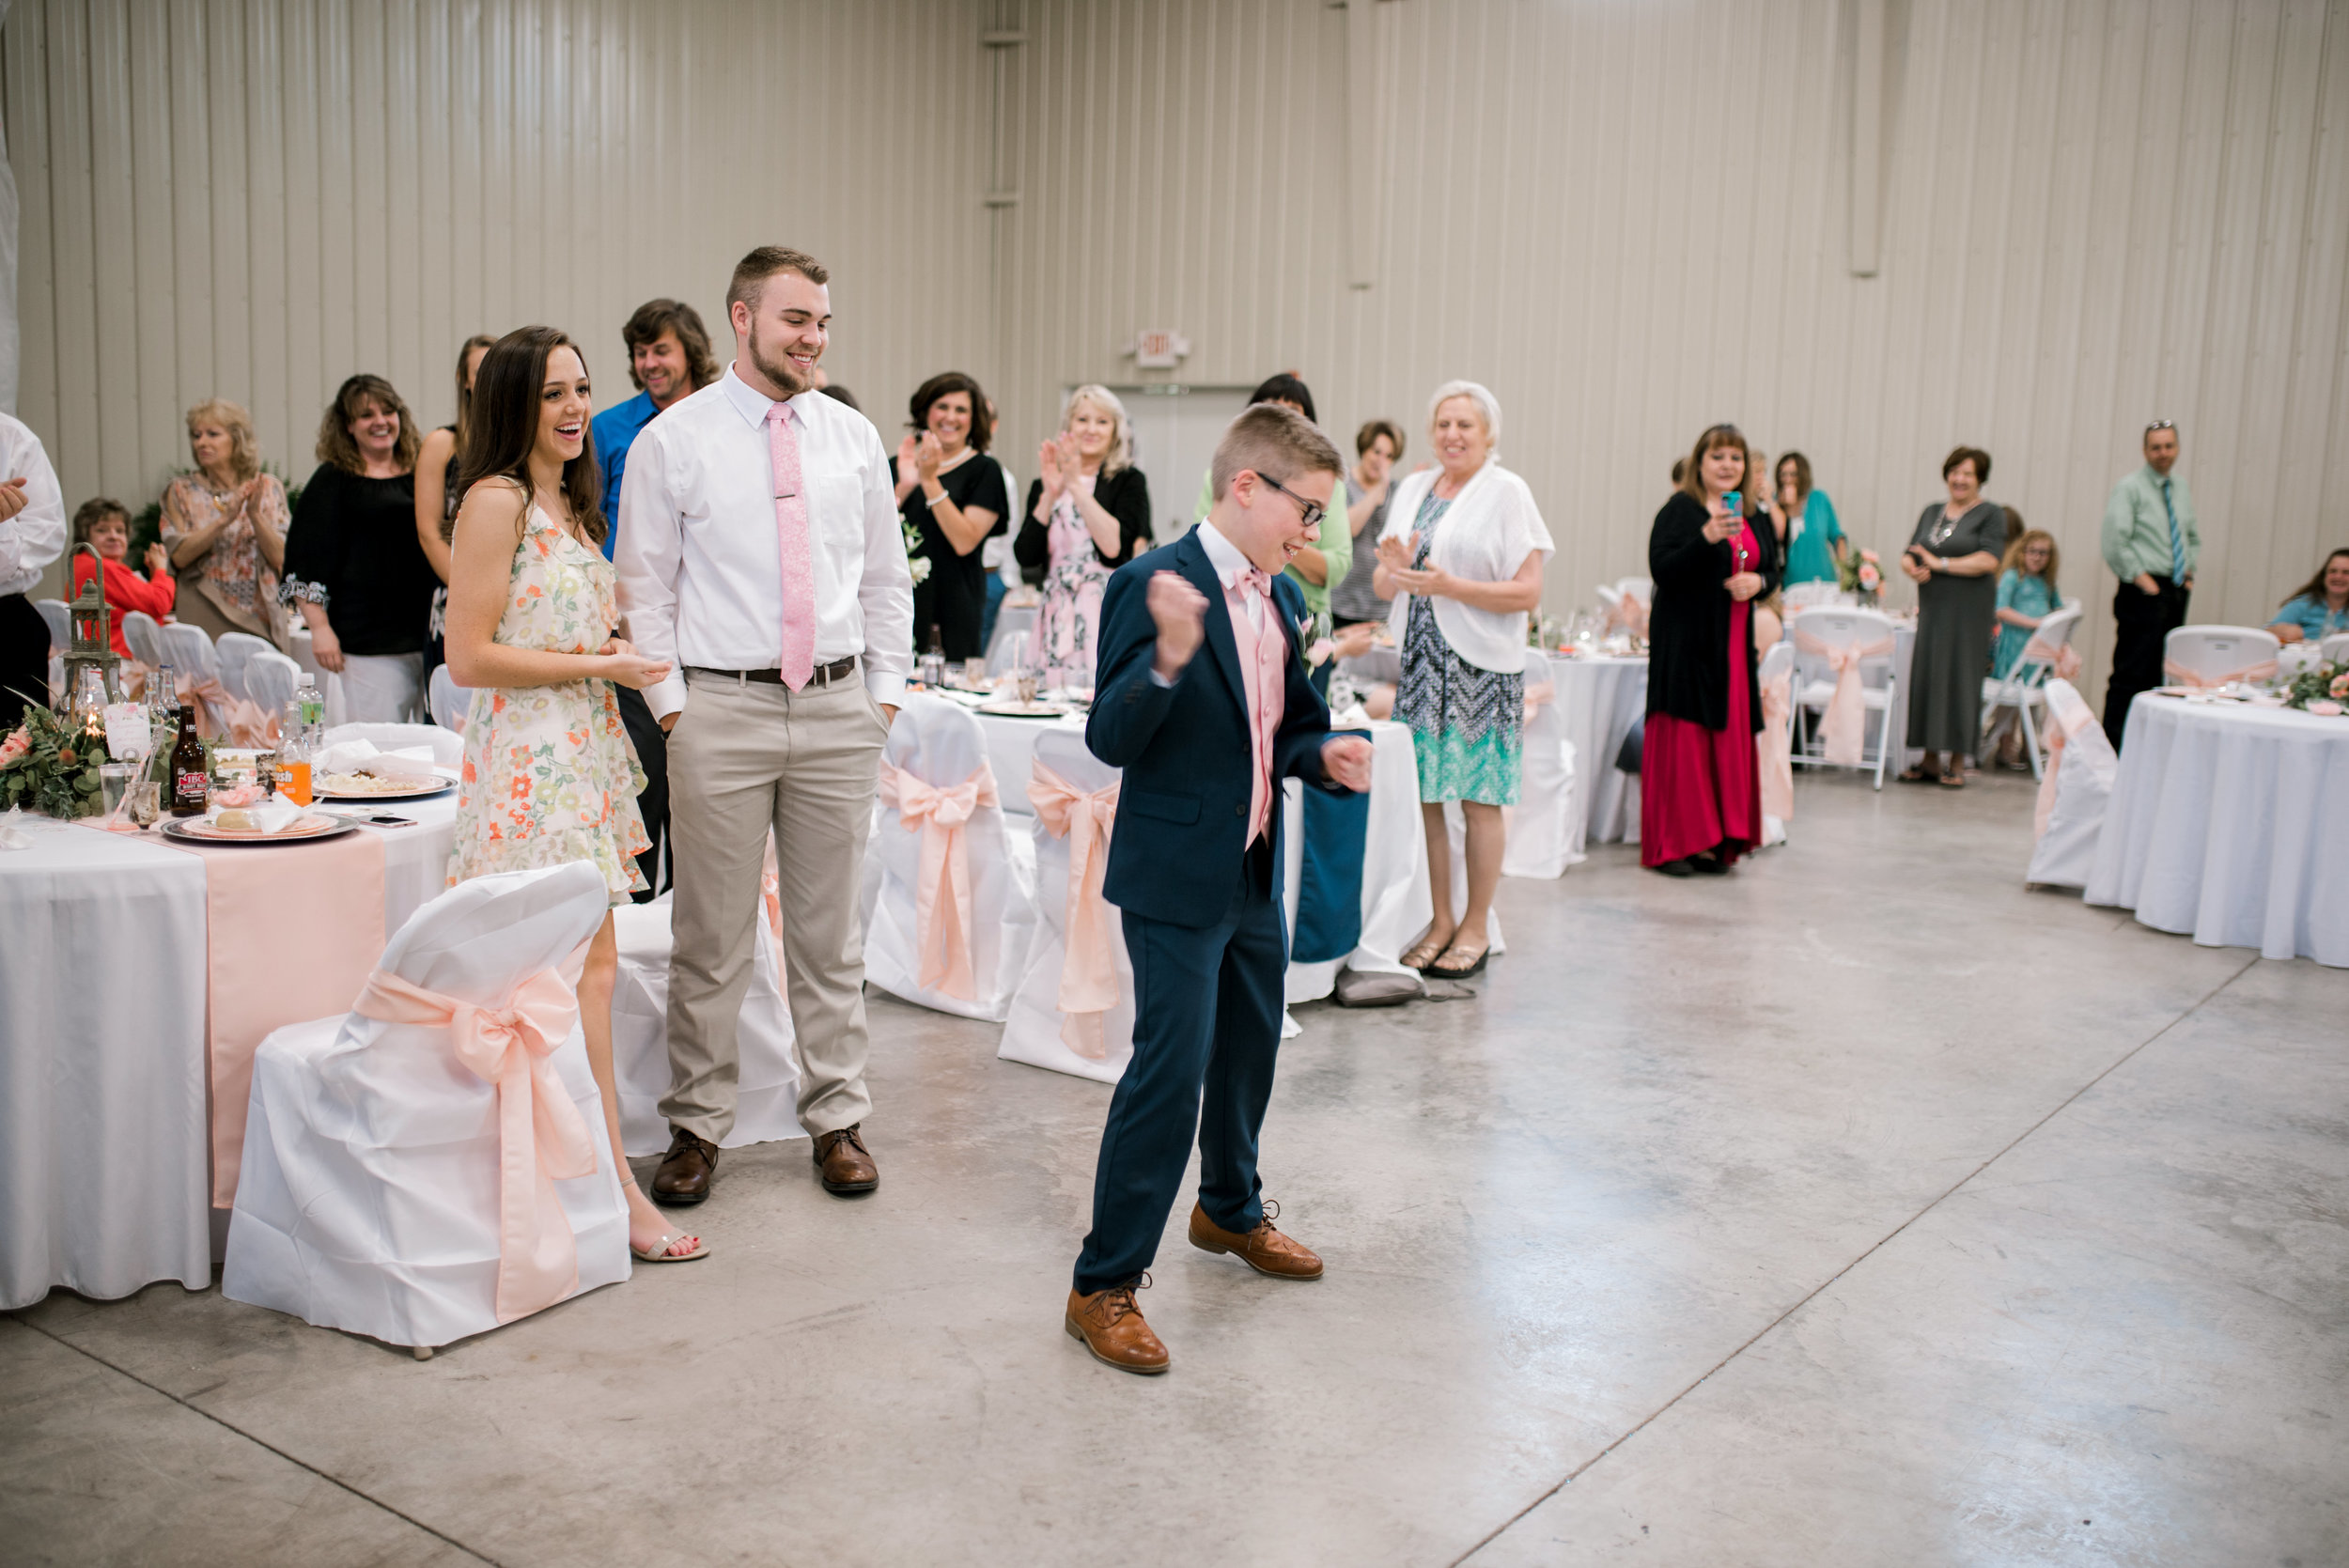 wedding-photographer-lexington-kentucky-reception-dancing